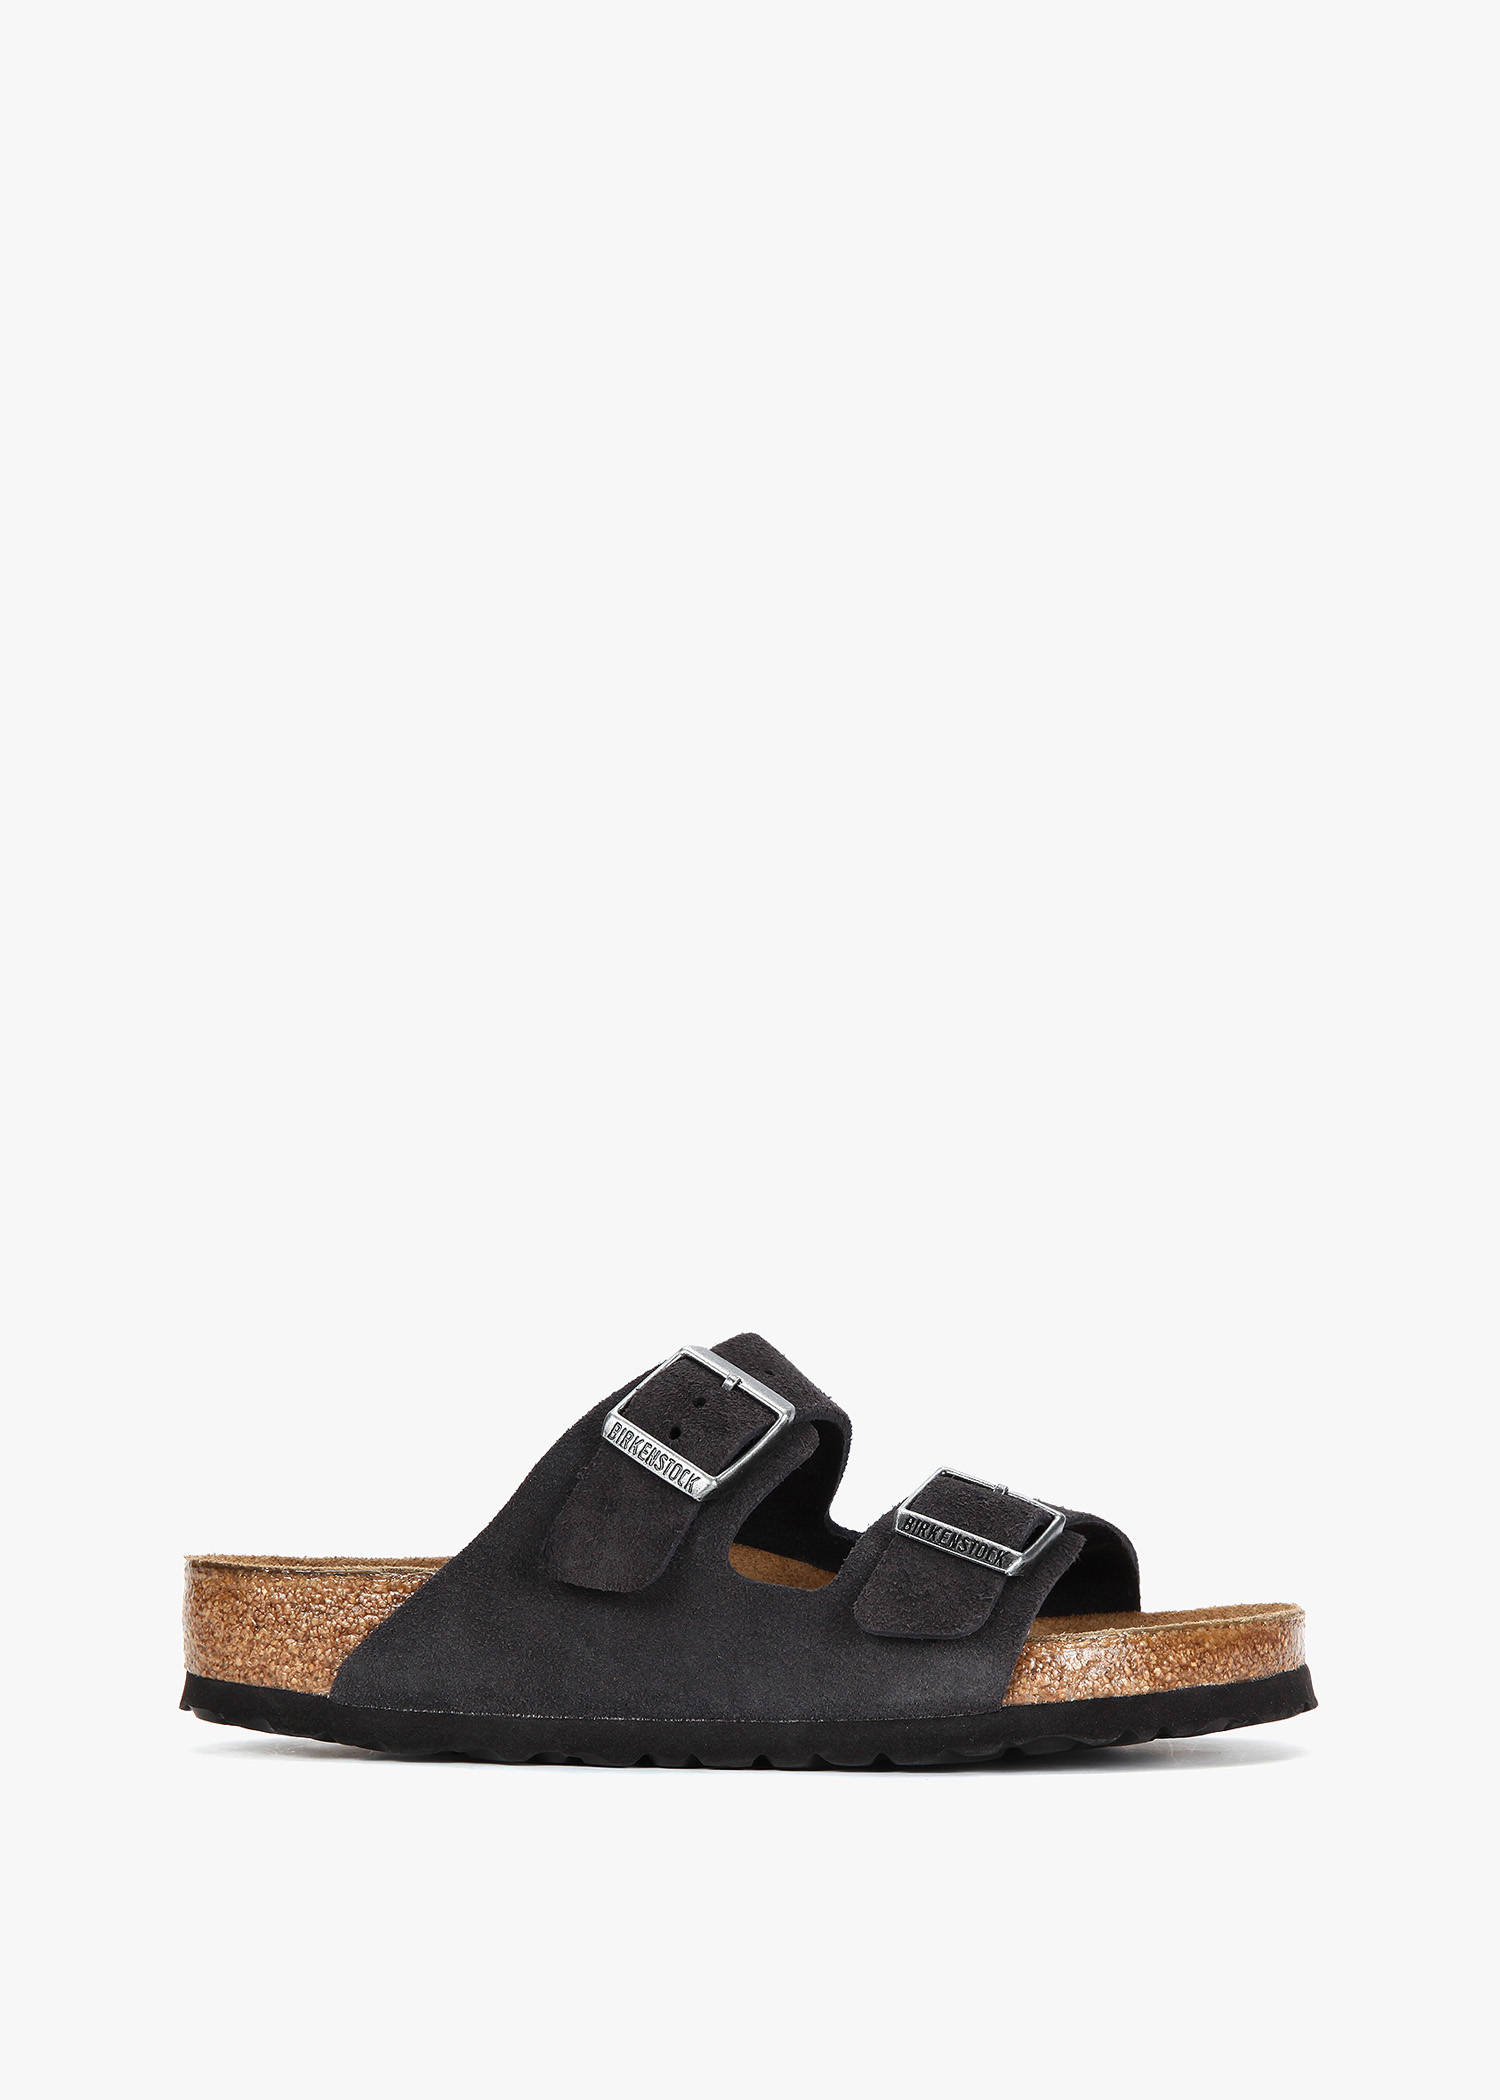 Birkenstock Black Nappa Leather Double Bands Sandal With